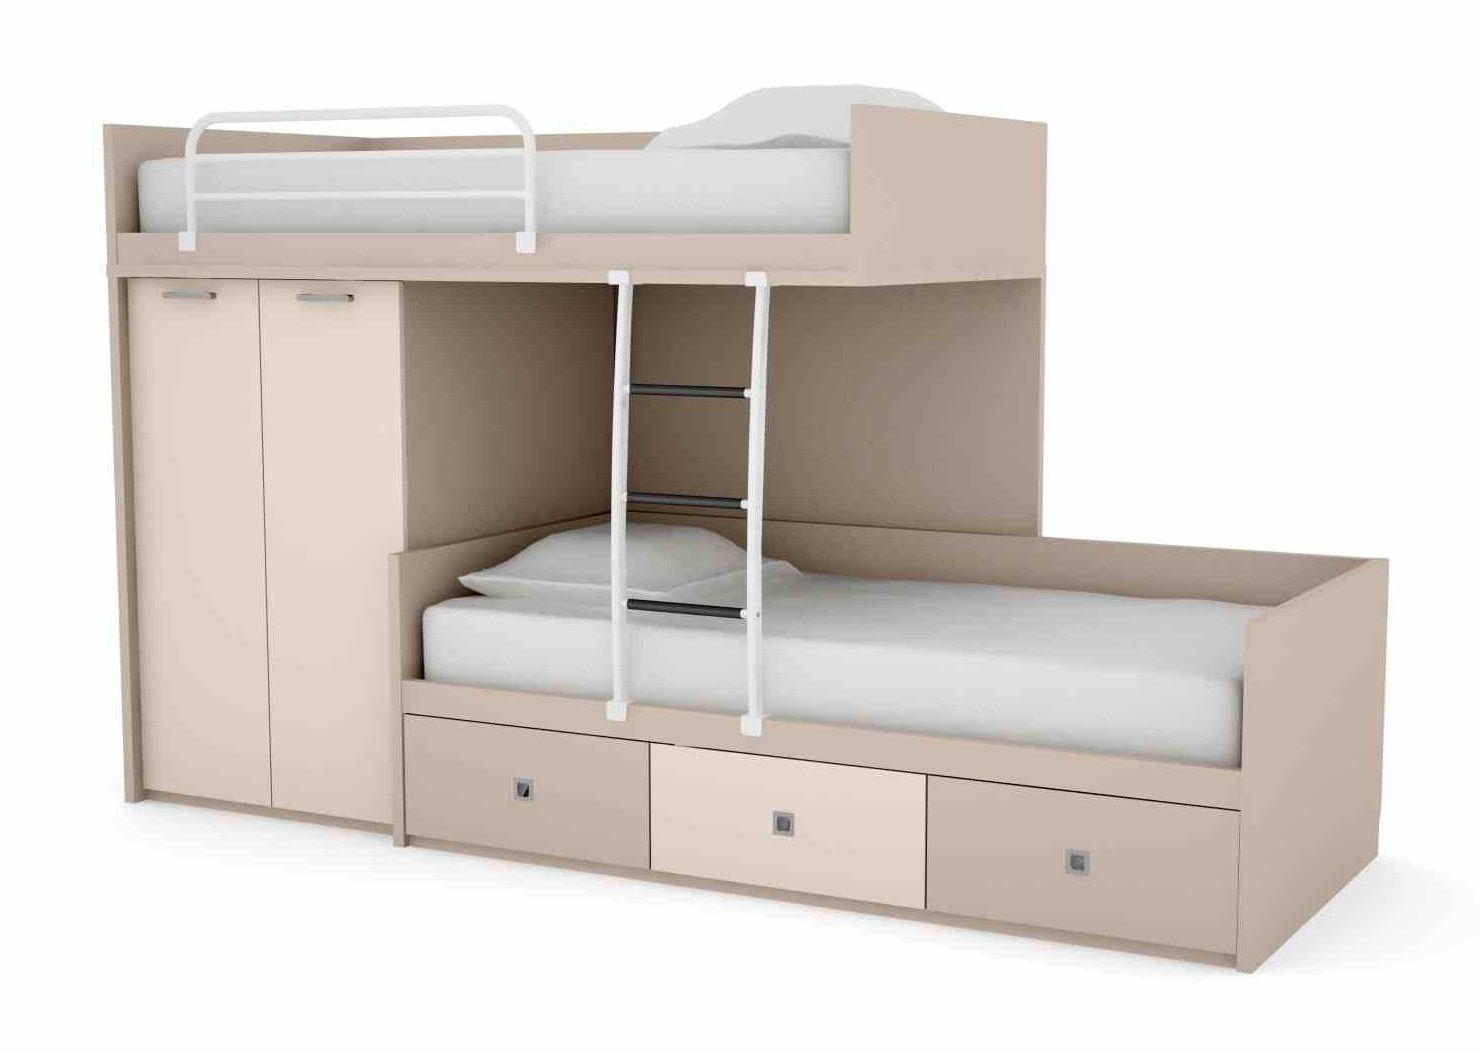 Merveilleux 99+ Compact Bunk Beds   Interior Bedroom Design Furniture Check More At  Http:/